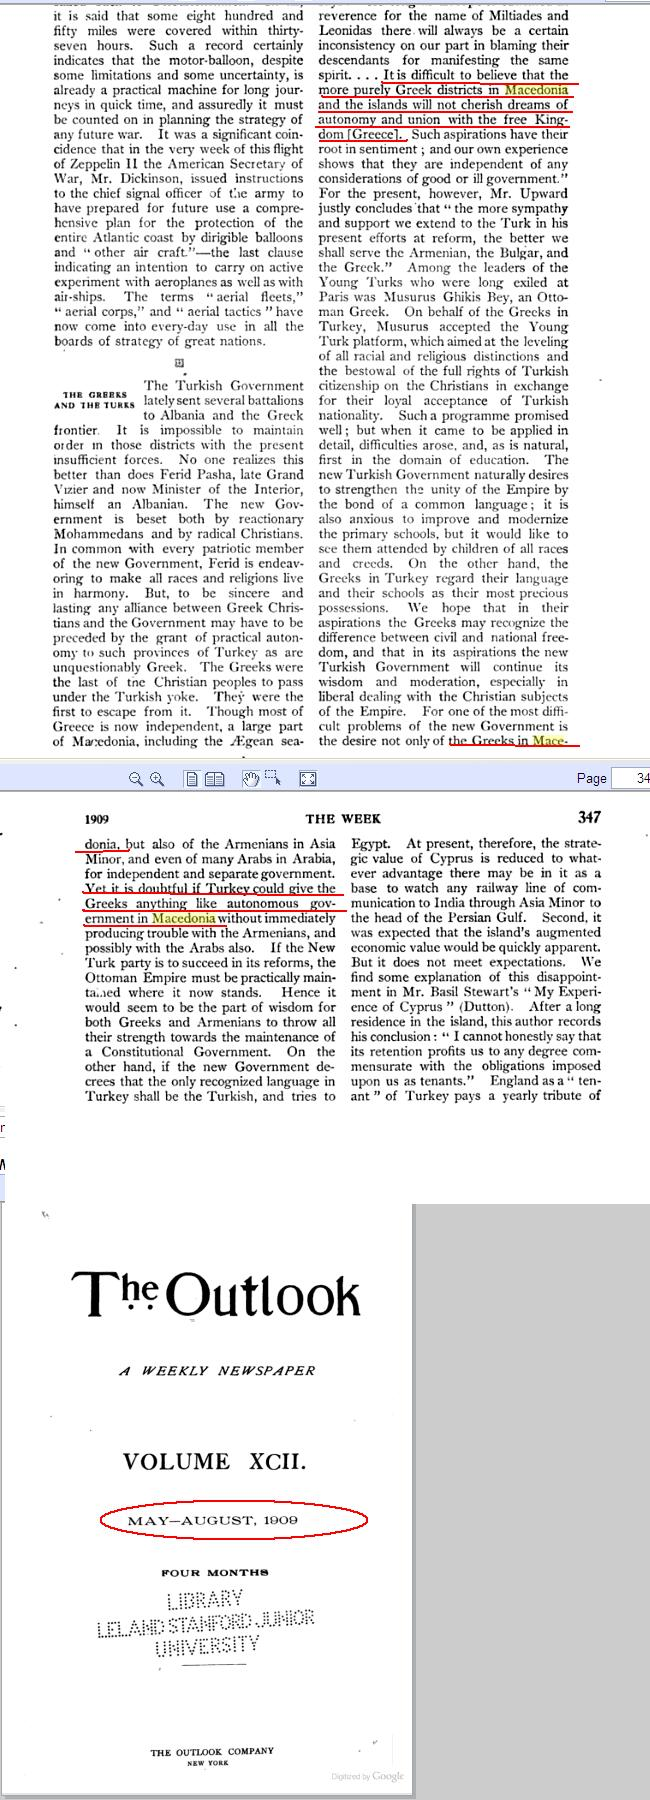 theoutlook1909dj2 The Outlook of 1909 about the Greek Districts of Macedonia